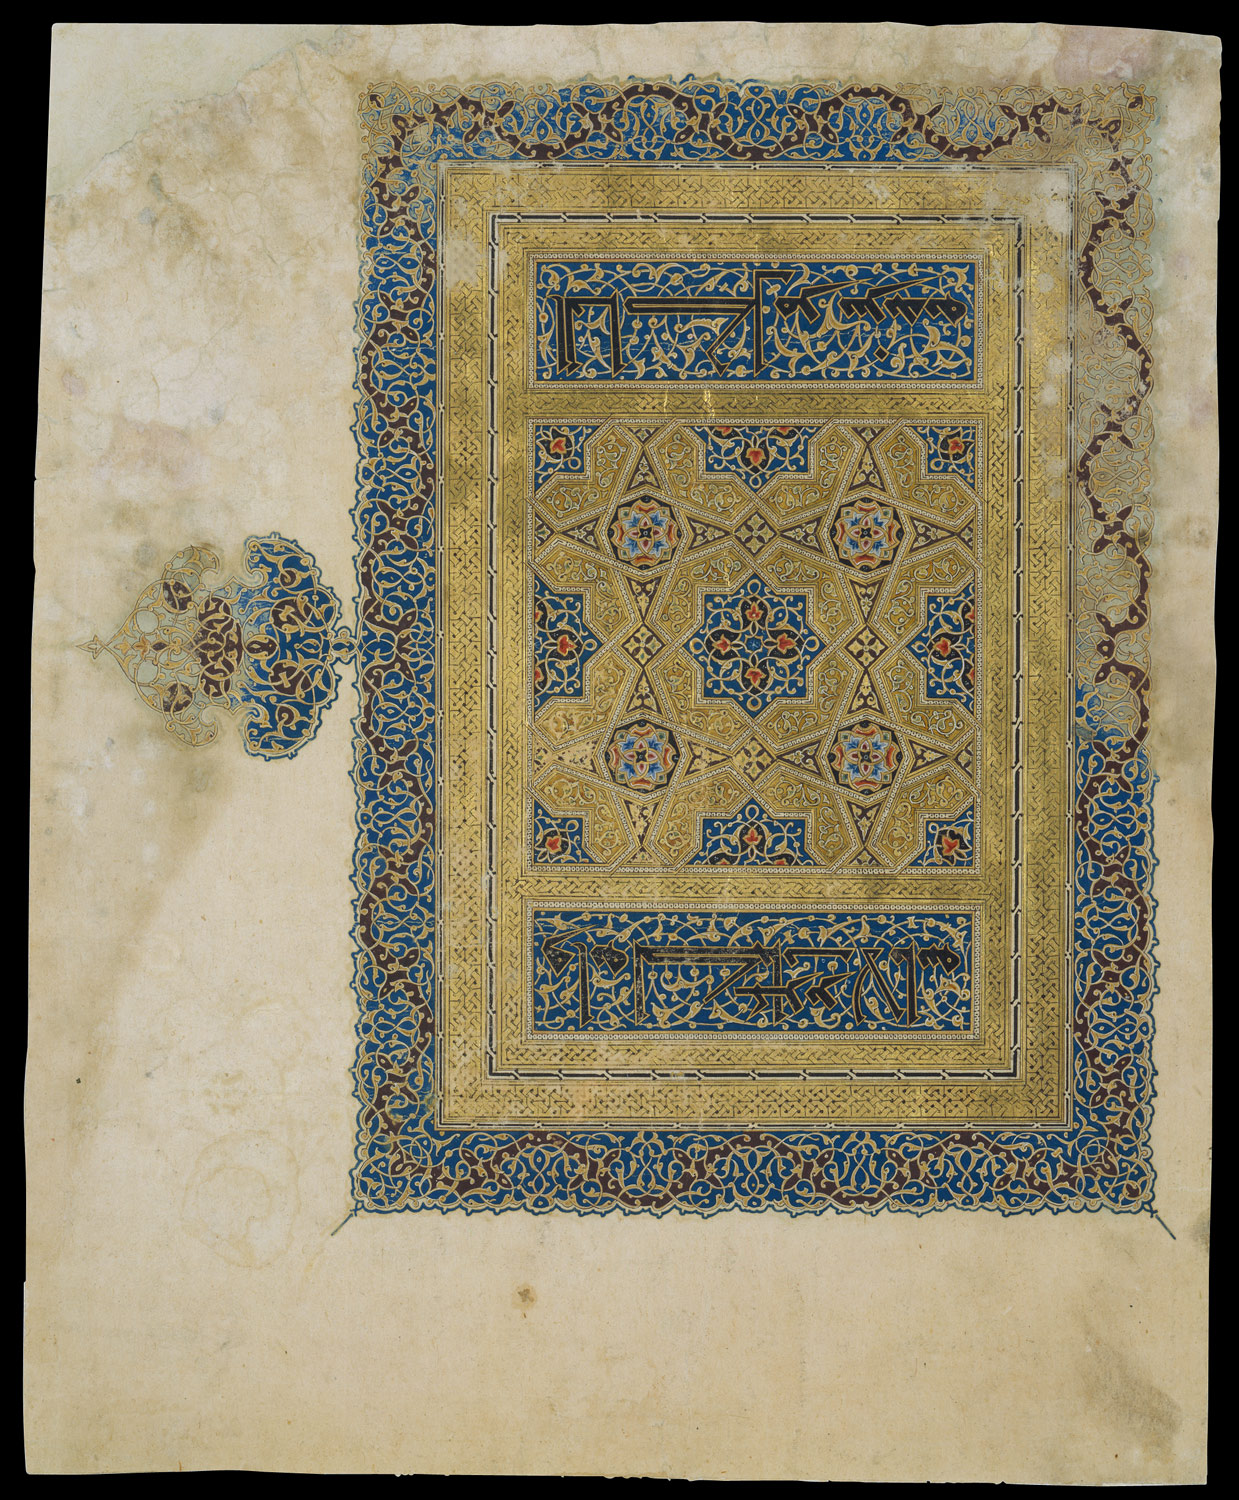 Opening Folio of the 26th Volume of the  Anonymous Baghdad Quran